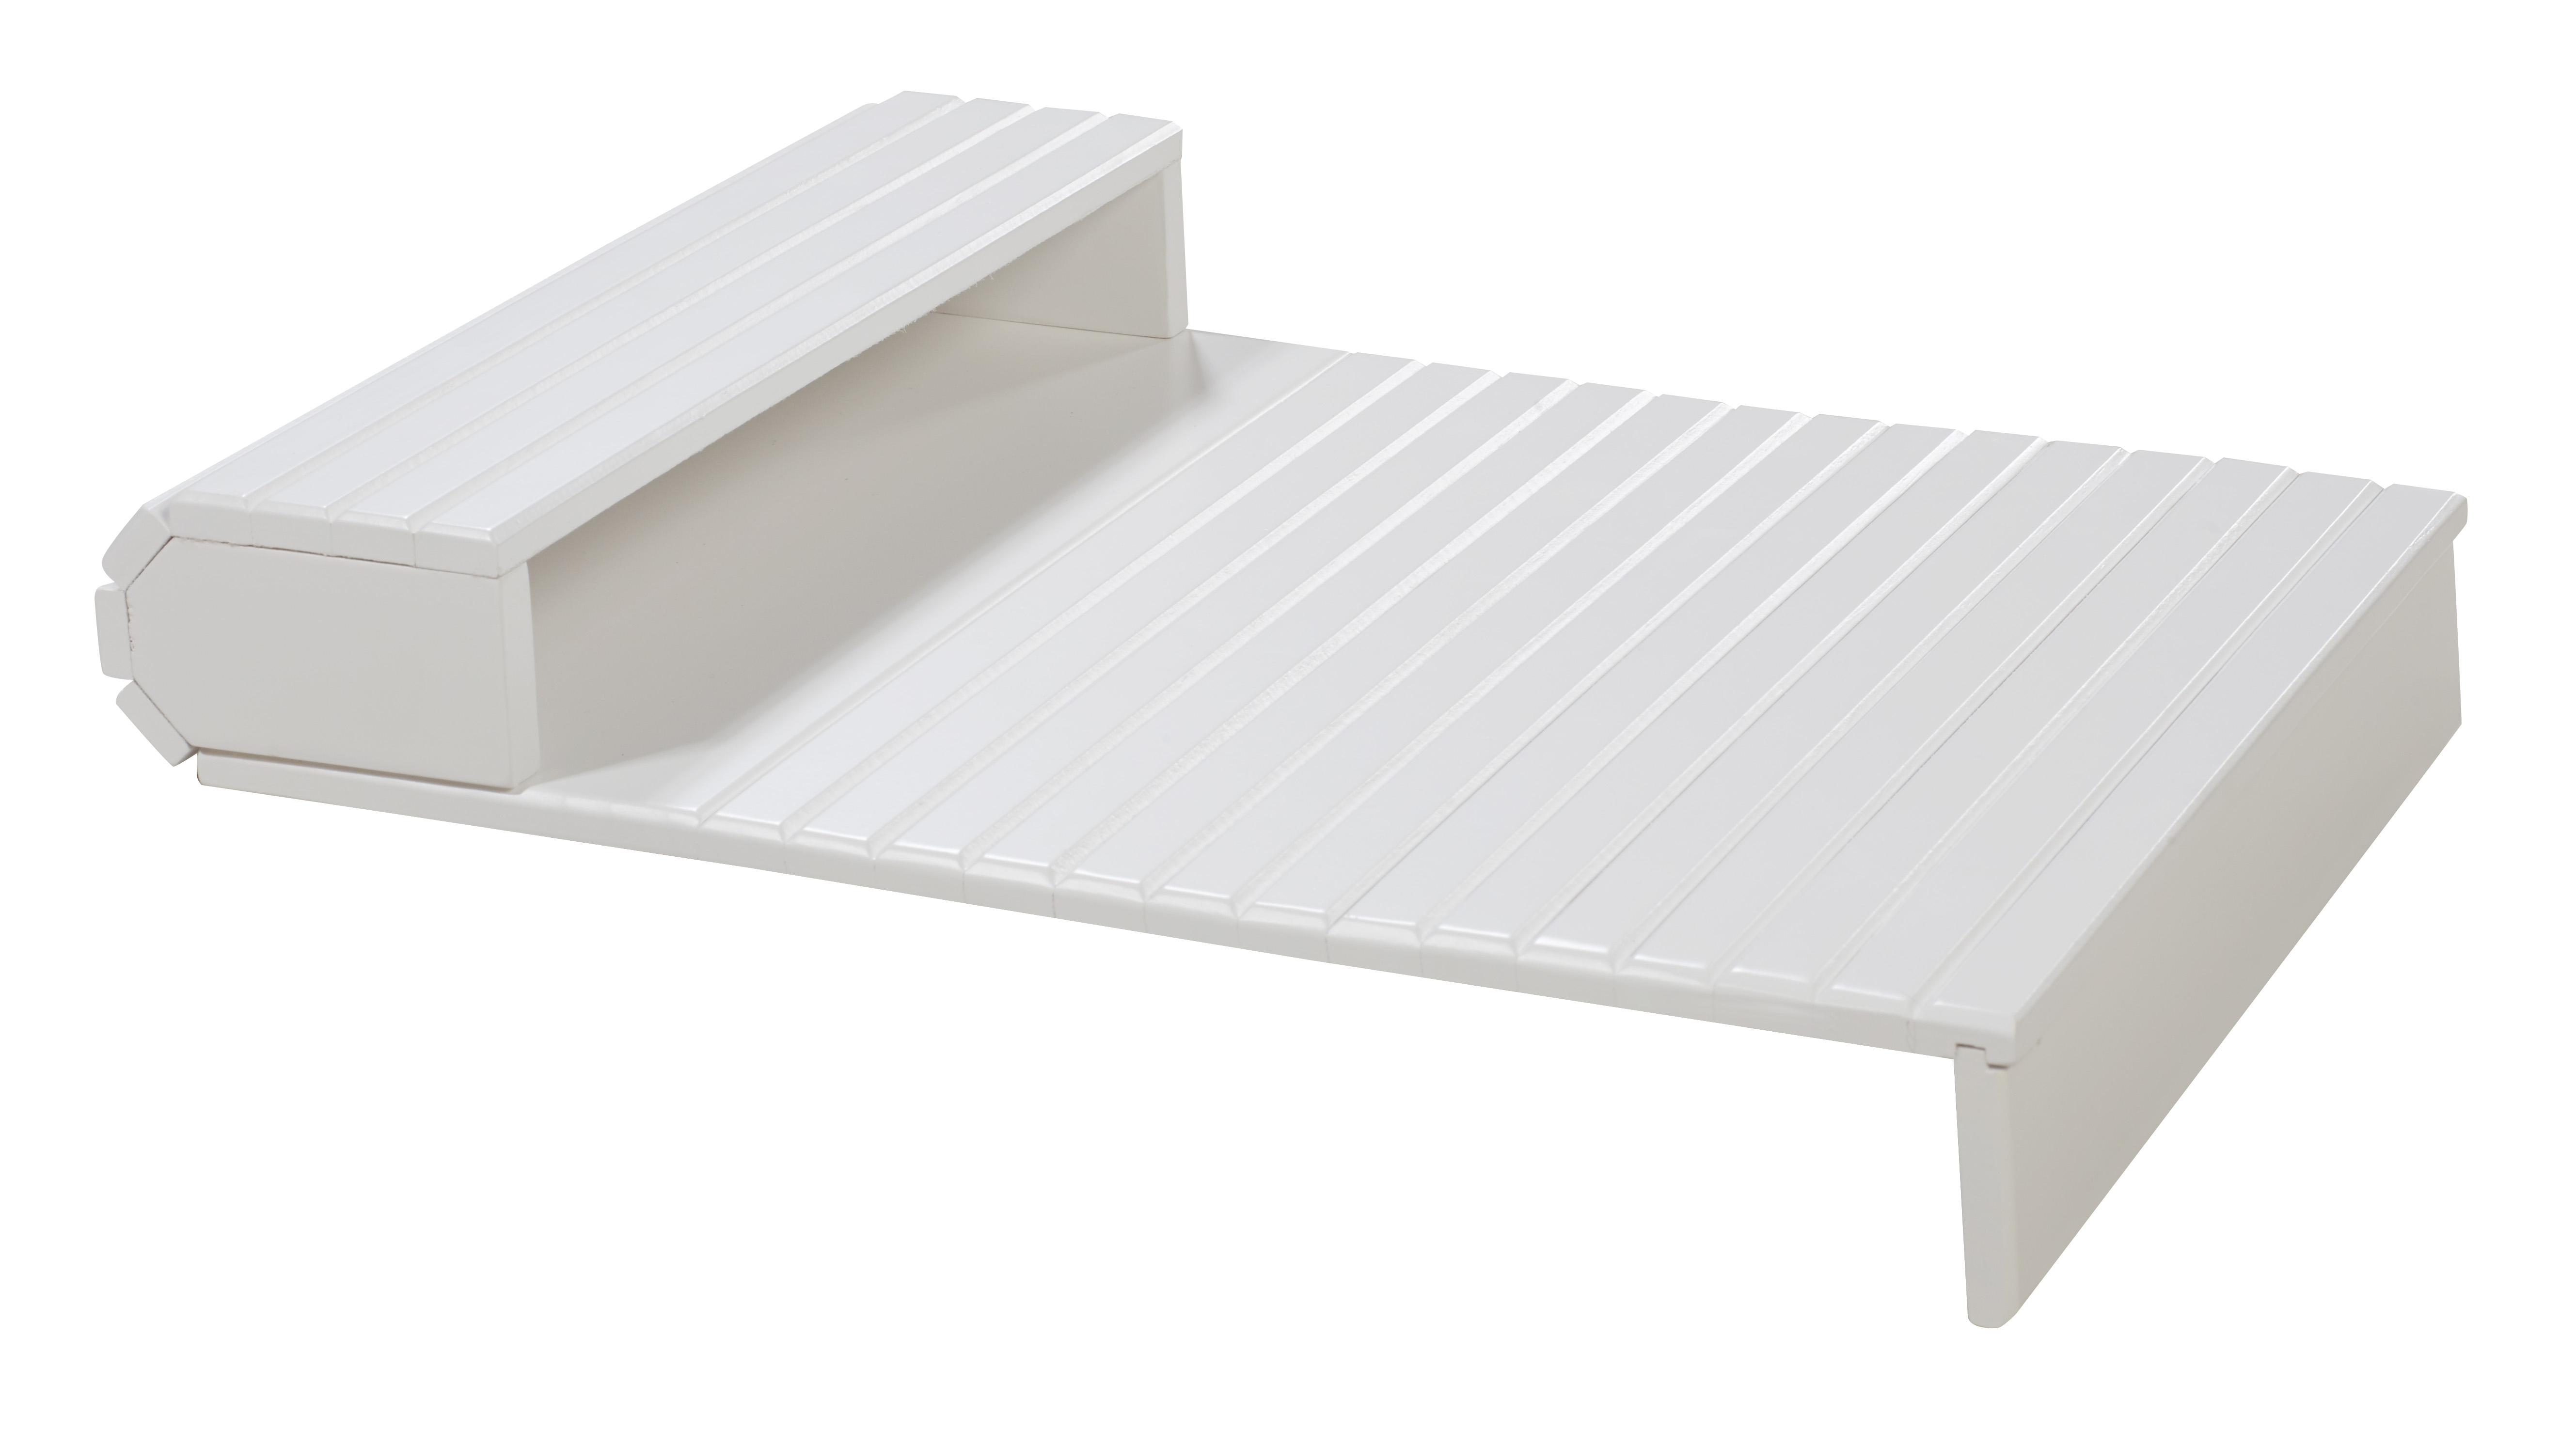 Soffitta USA Couchmaid Organizer Solid Wood Sofa/Laptop Tray White Hand Crafted at Sears.com